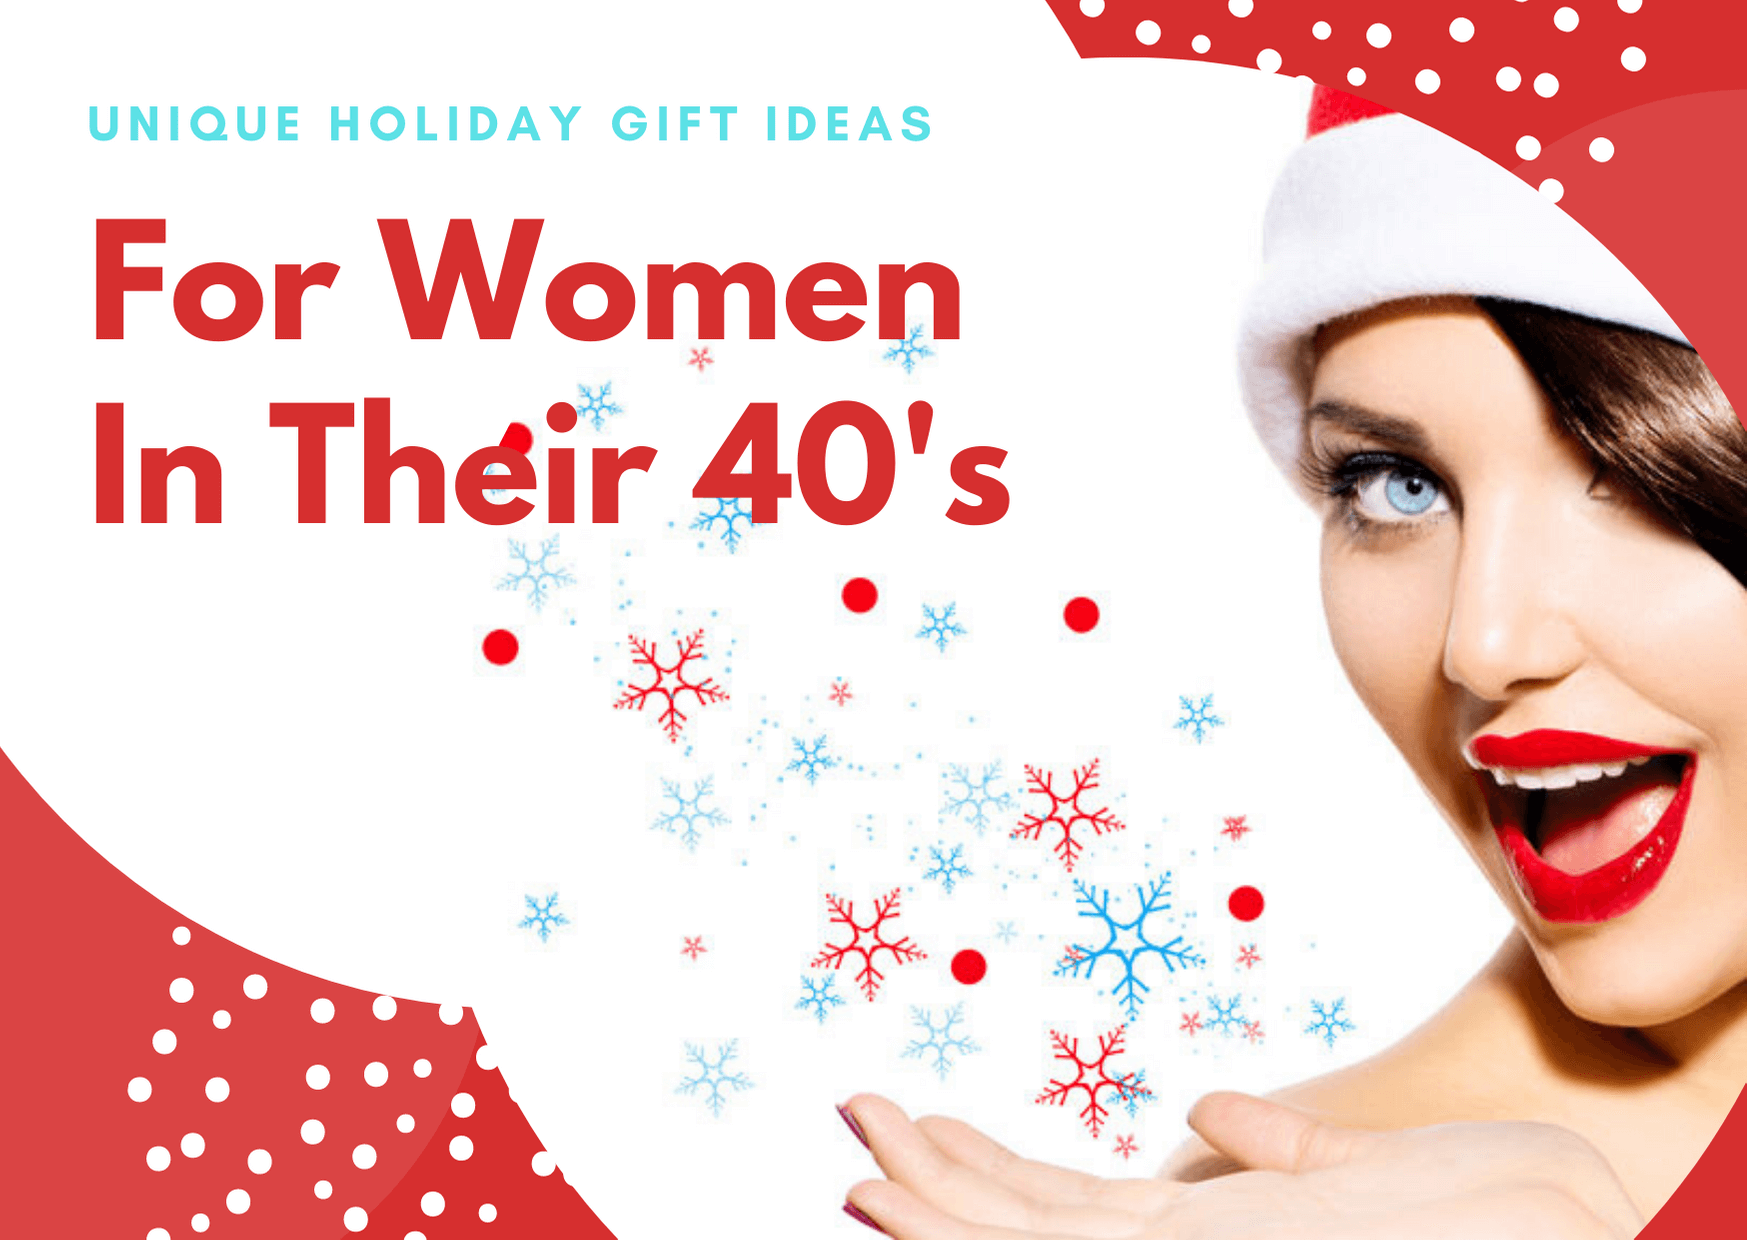 Unique Holiday Gift Ideas For Women In Their Forties